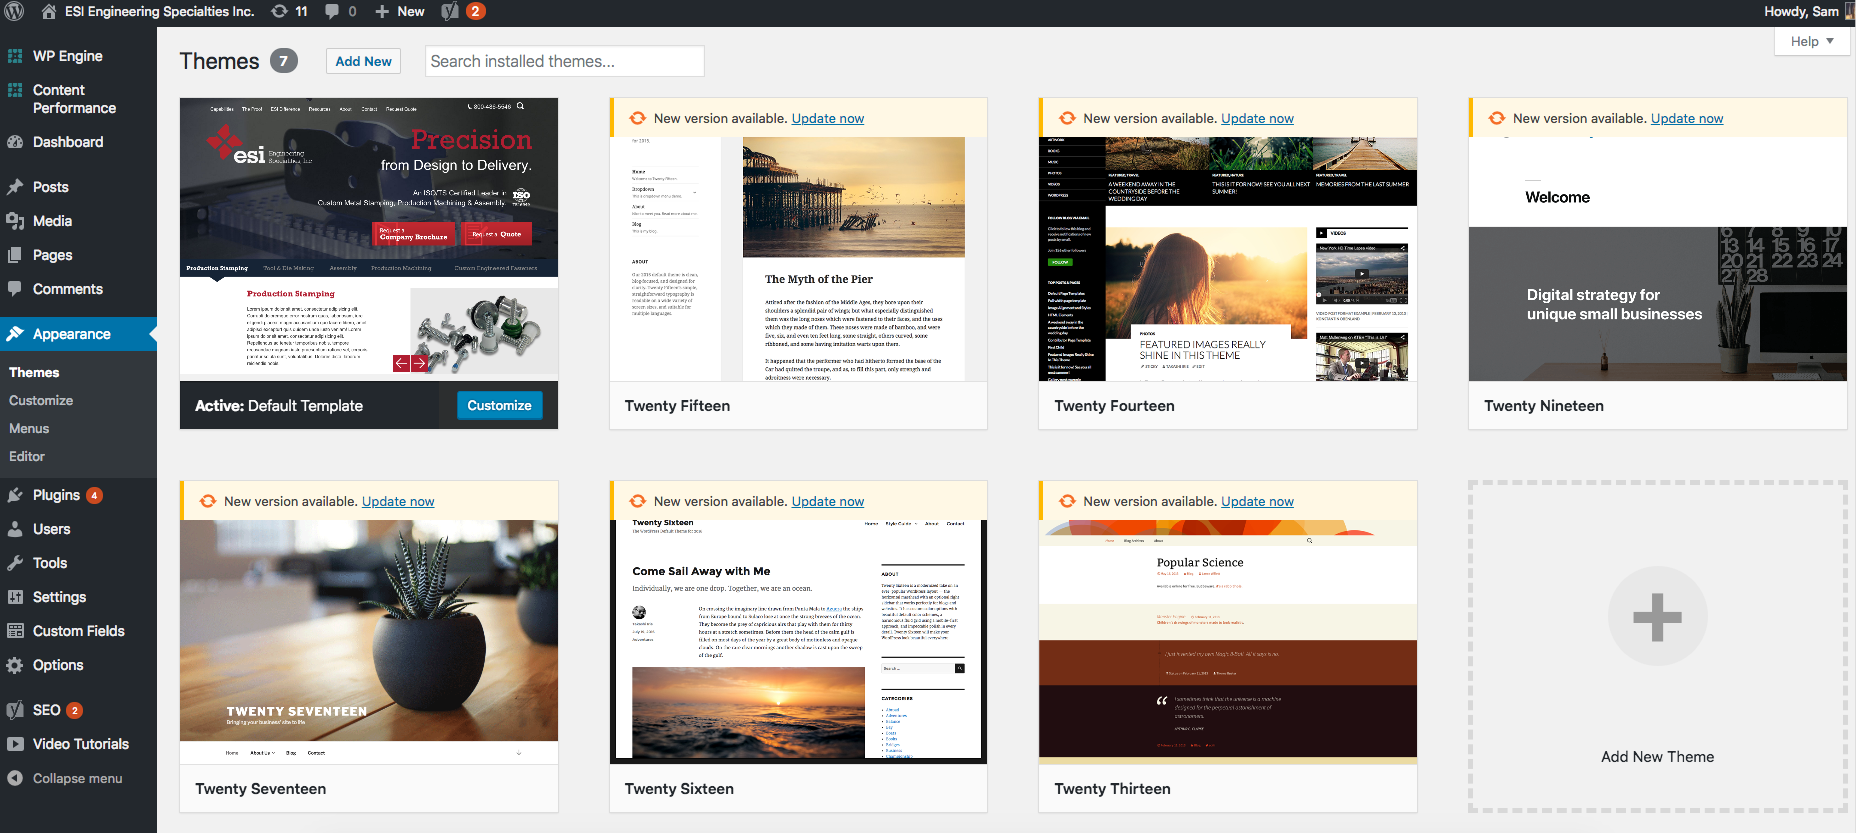 Customizable Templates On Wordpress